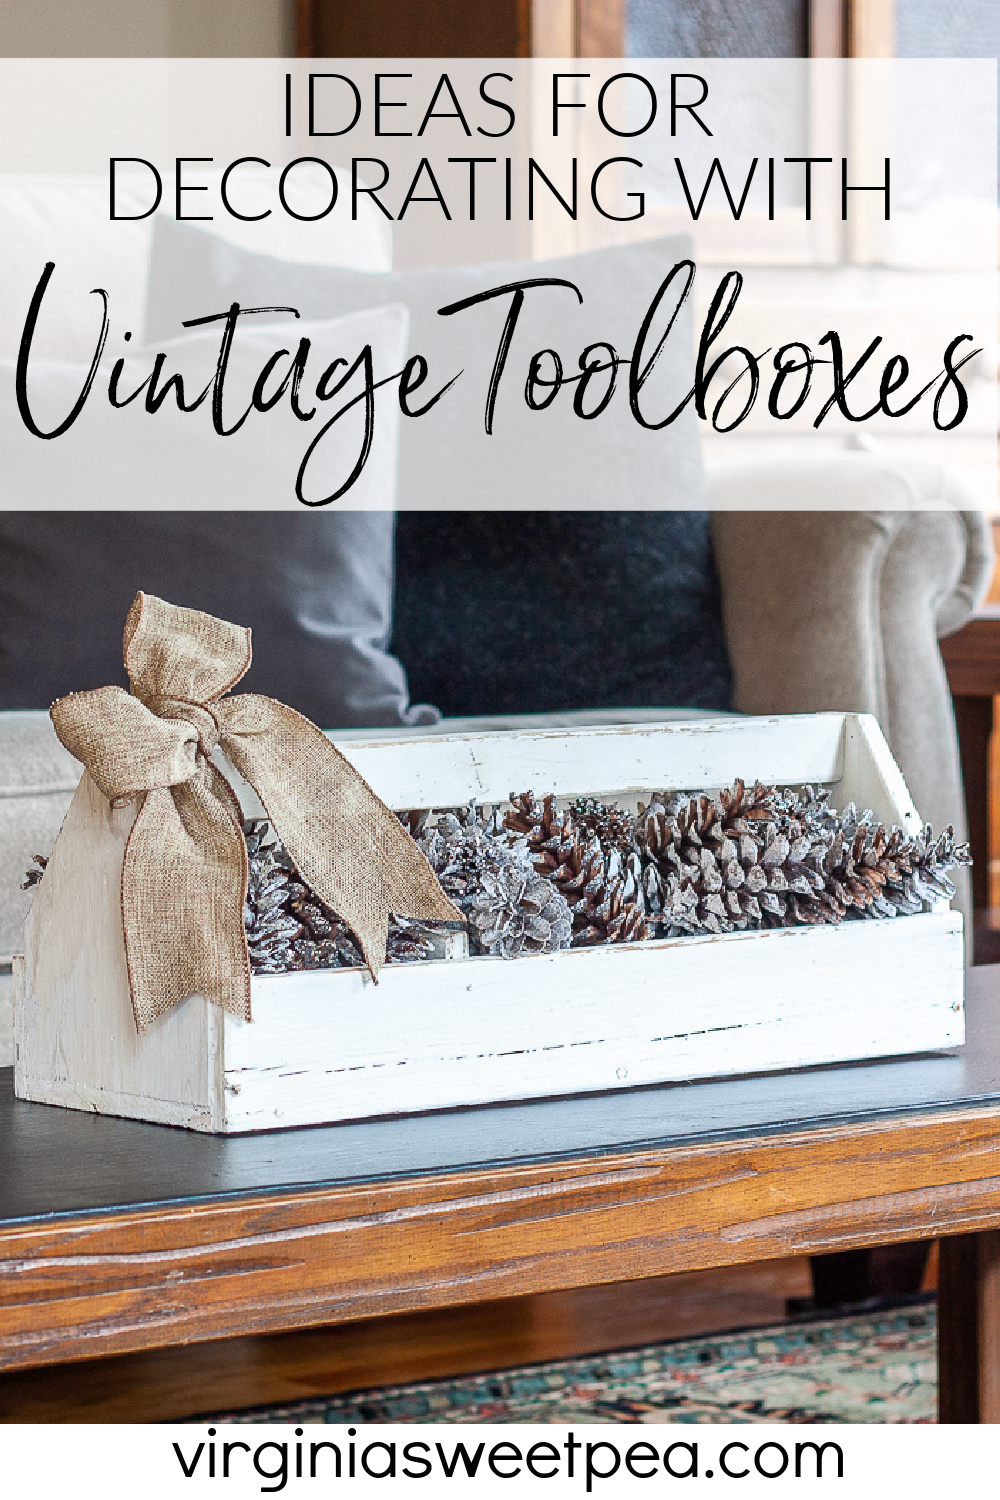 Vintage toolboxes are readily available and useful for home decor.  Add pinecones to a toolbox for a winter centerpiece.  Fill it with florals for spring and summer.  In fall use it to display pumpkins and gourds.  For Christmas fill it with greenery, pinecones, and ornaments.  Don't miss these great ideas for decorating with vintage toolboxes! via @spaula